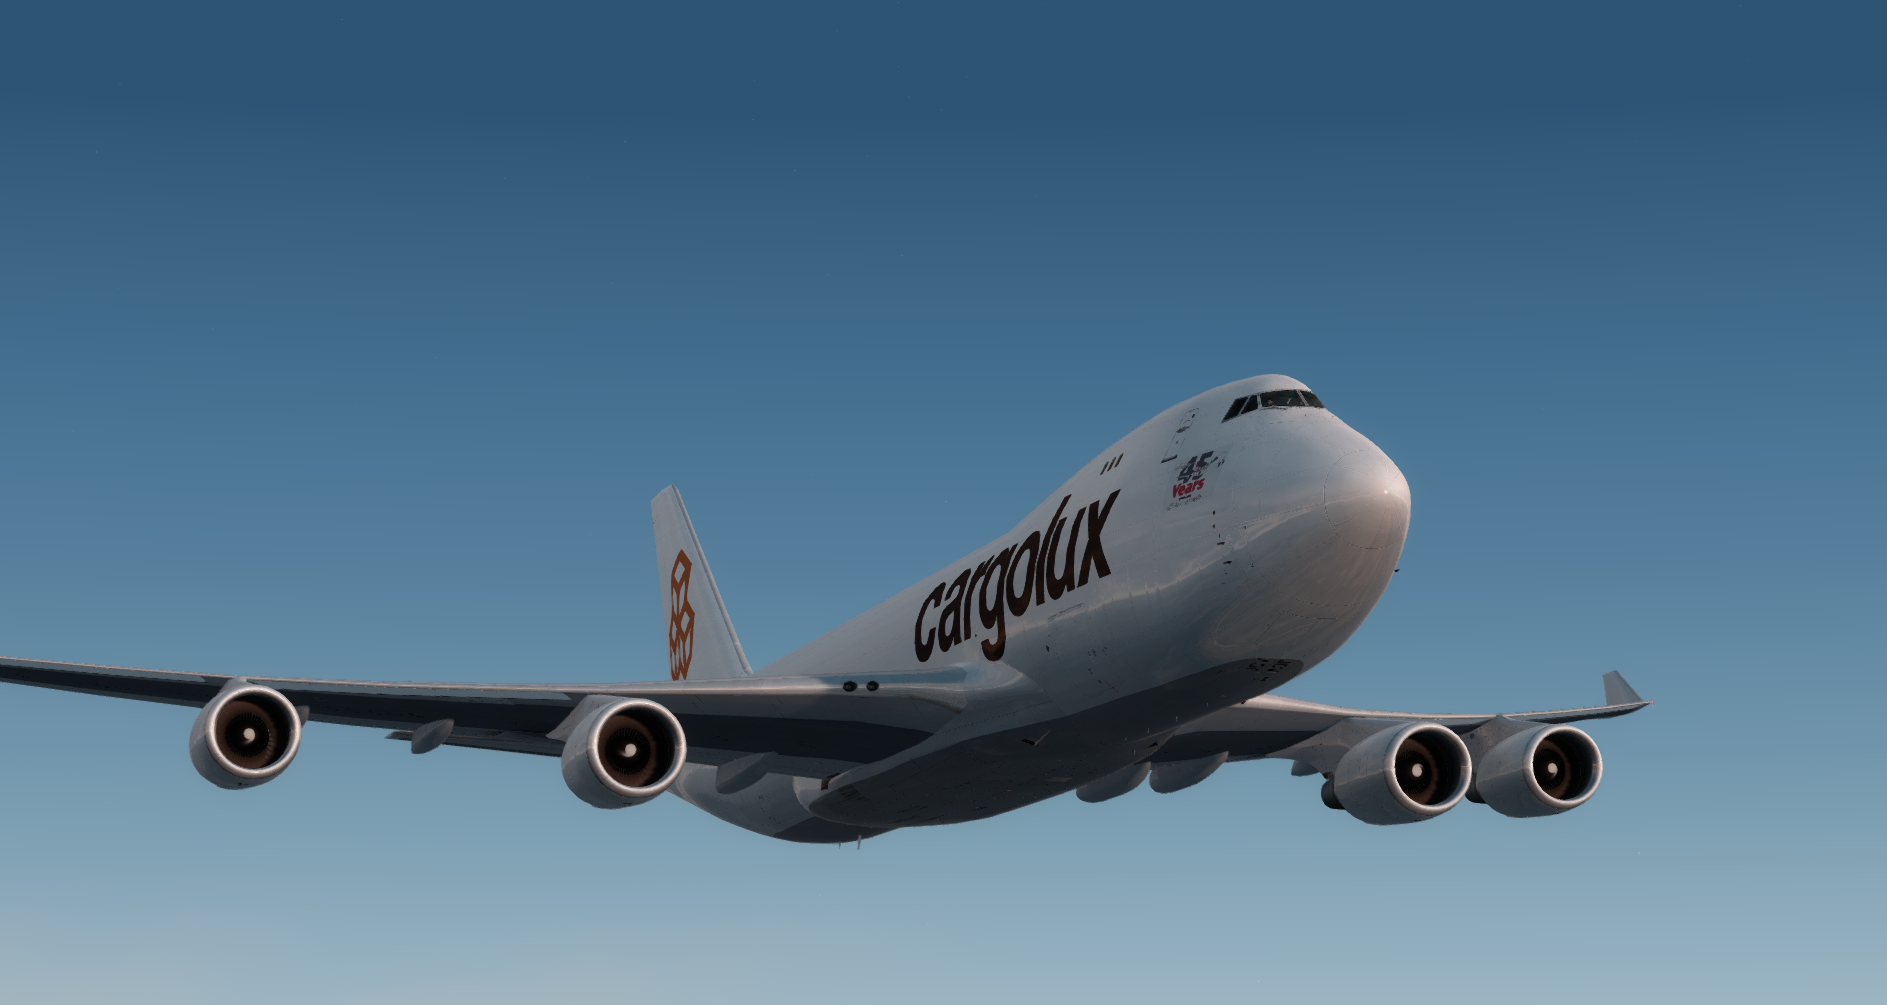 virtual cargolux – You name it, we fly it!